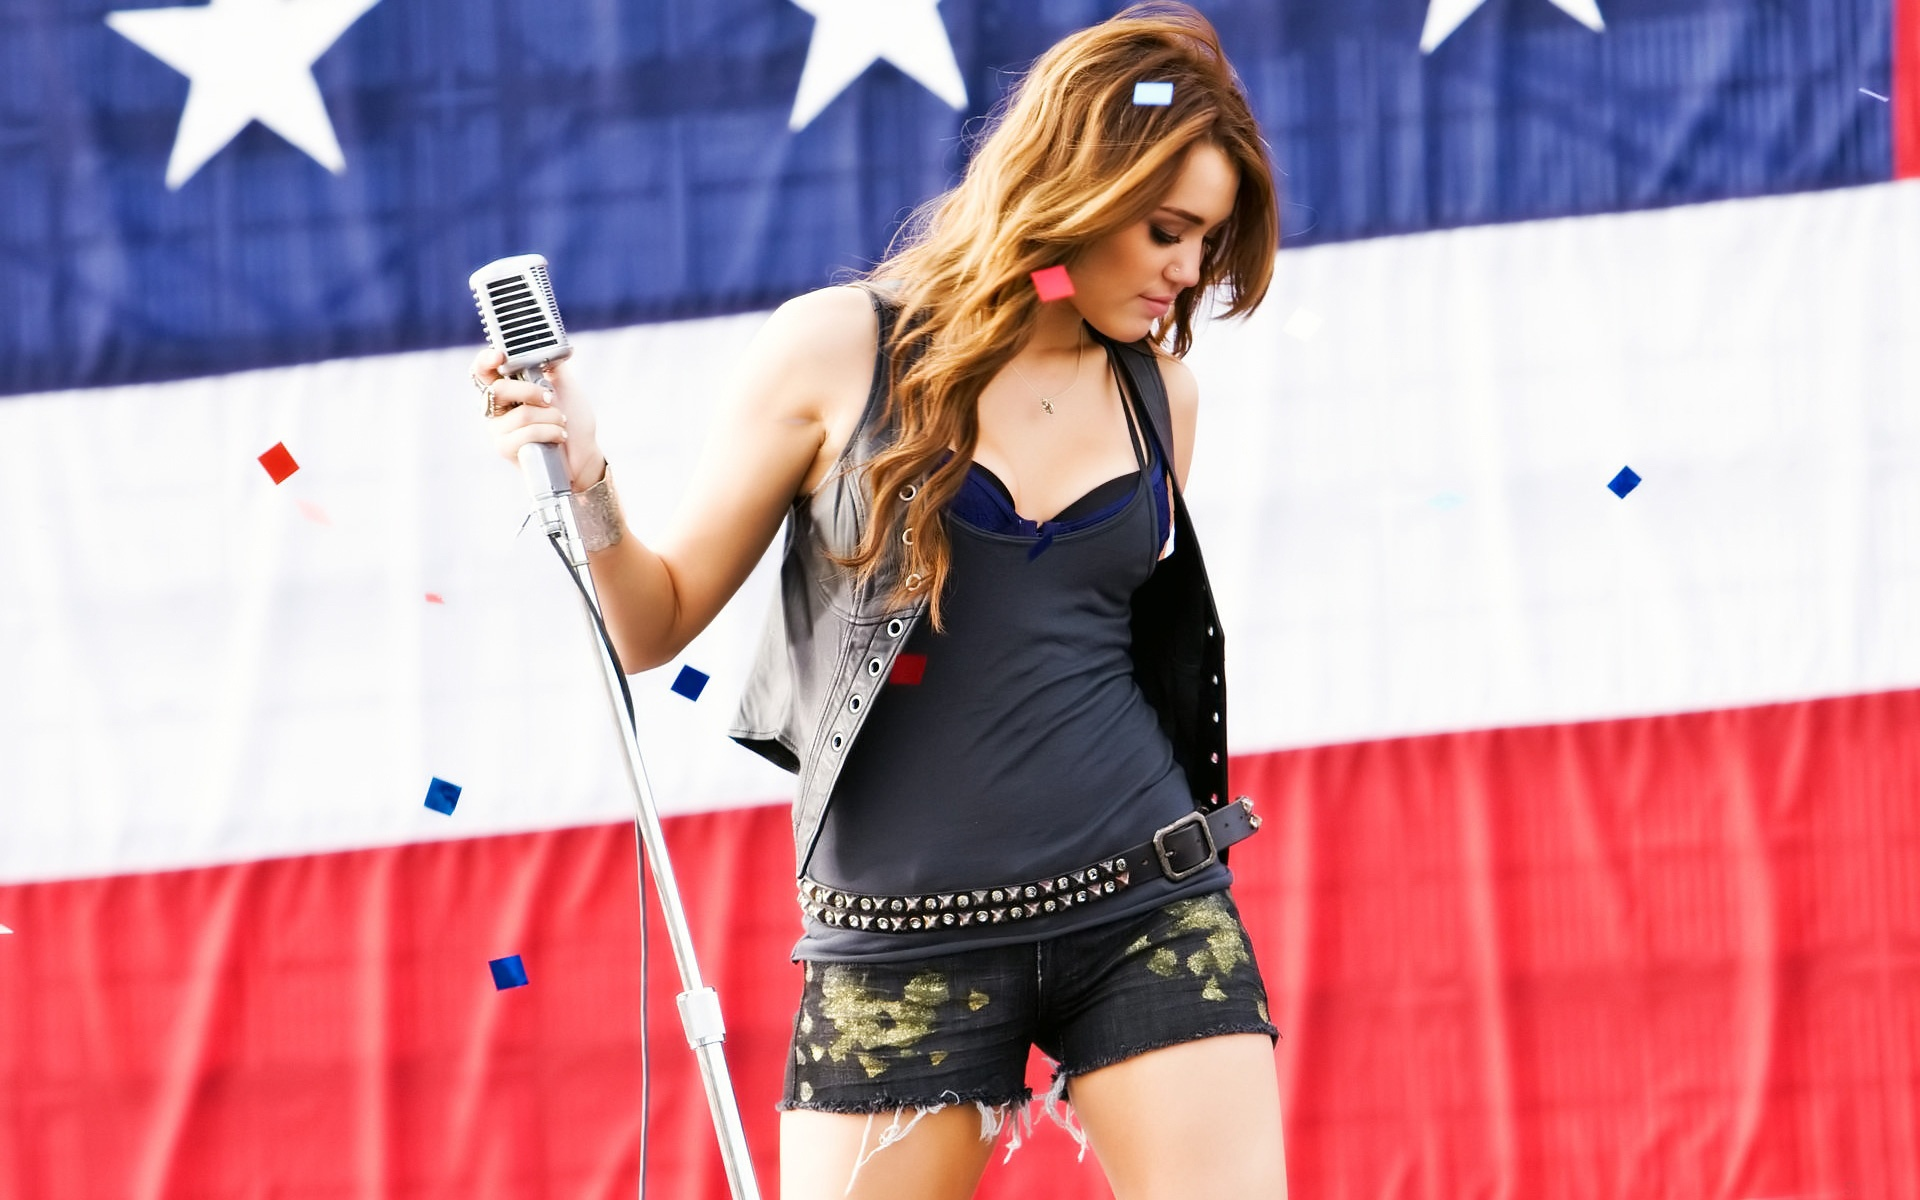 miley cyrus images hd A33